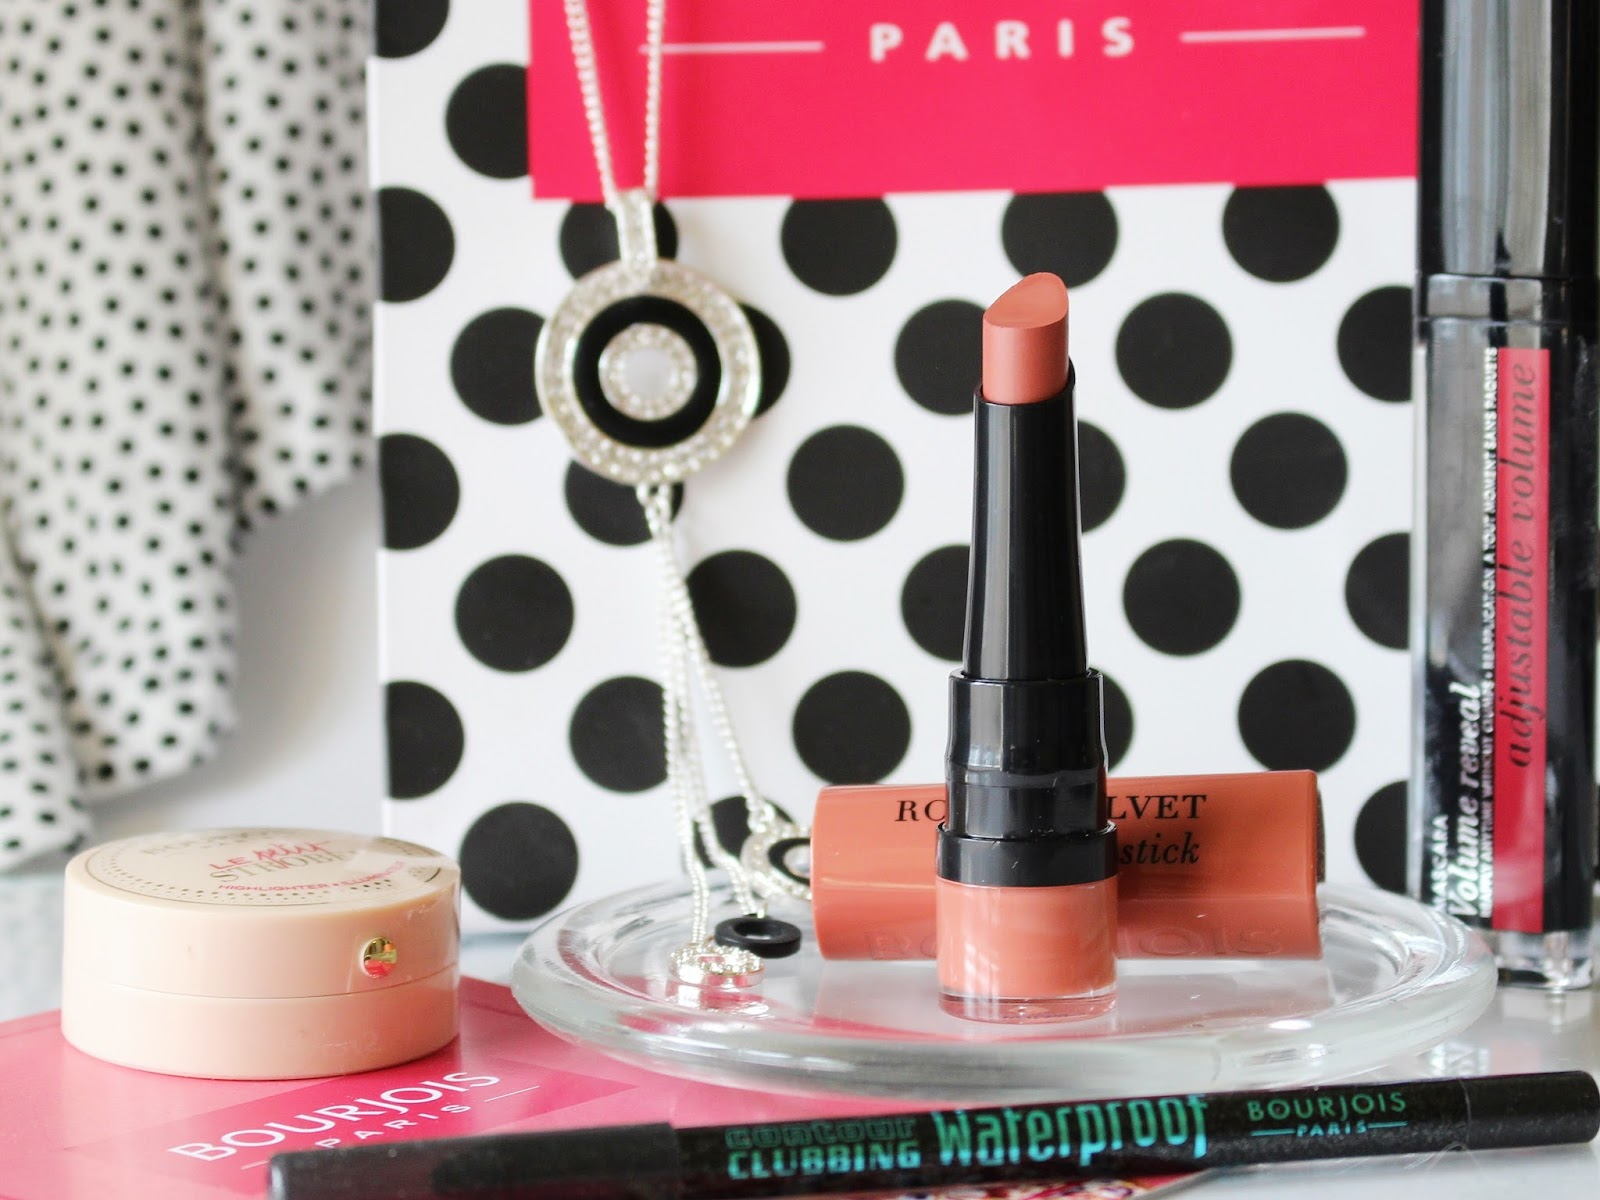 Bourjois Rouge Velvet The Lipstick - 15 Peach Tatin